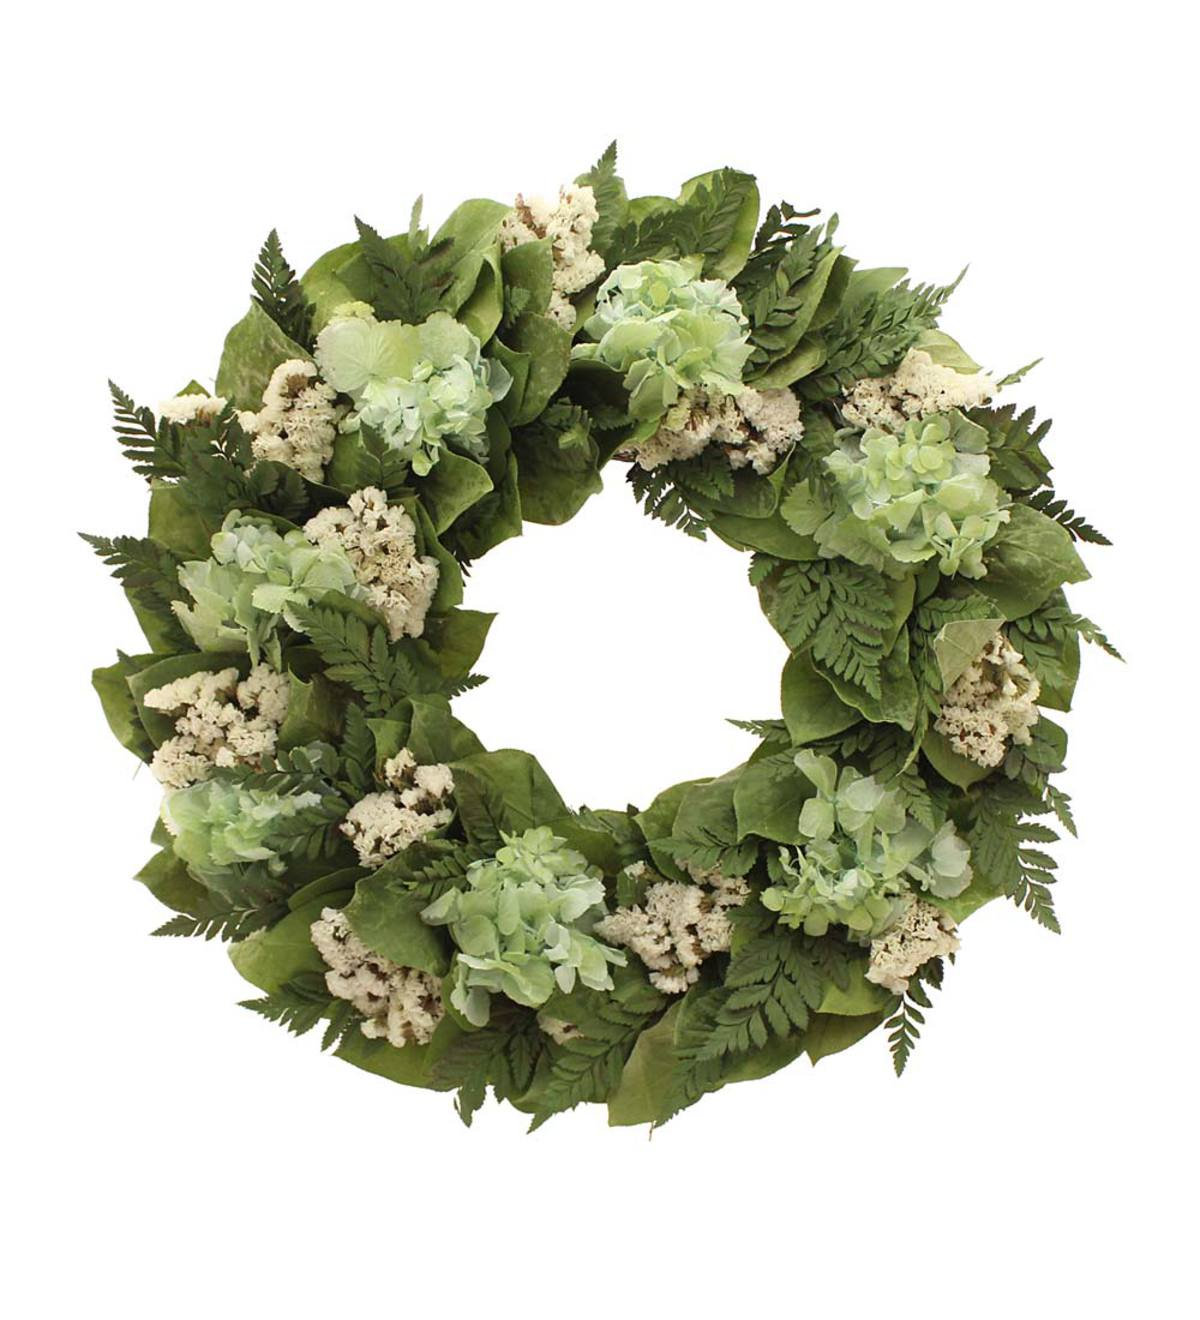 Alfresco Fern Collection Wreath